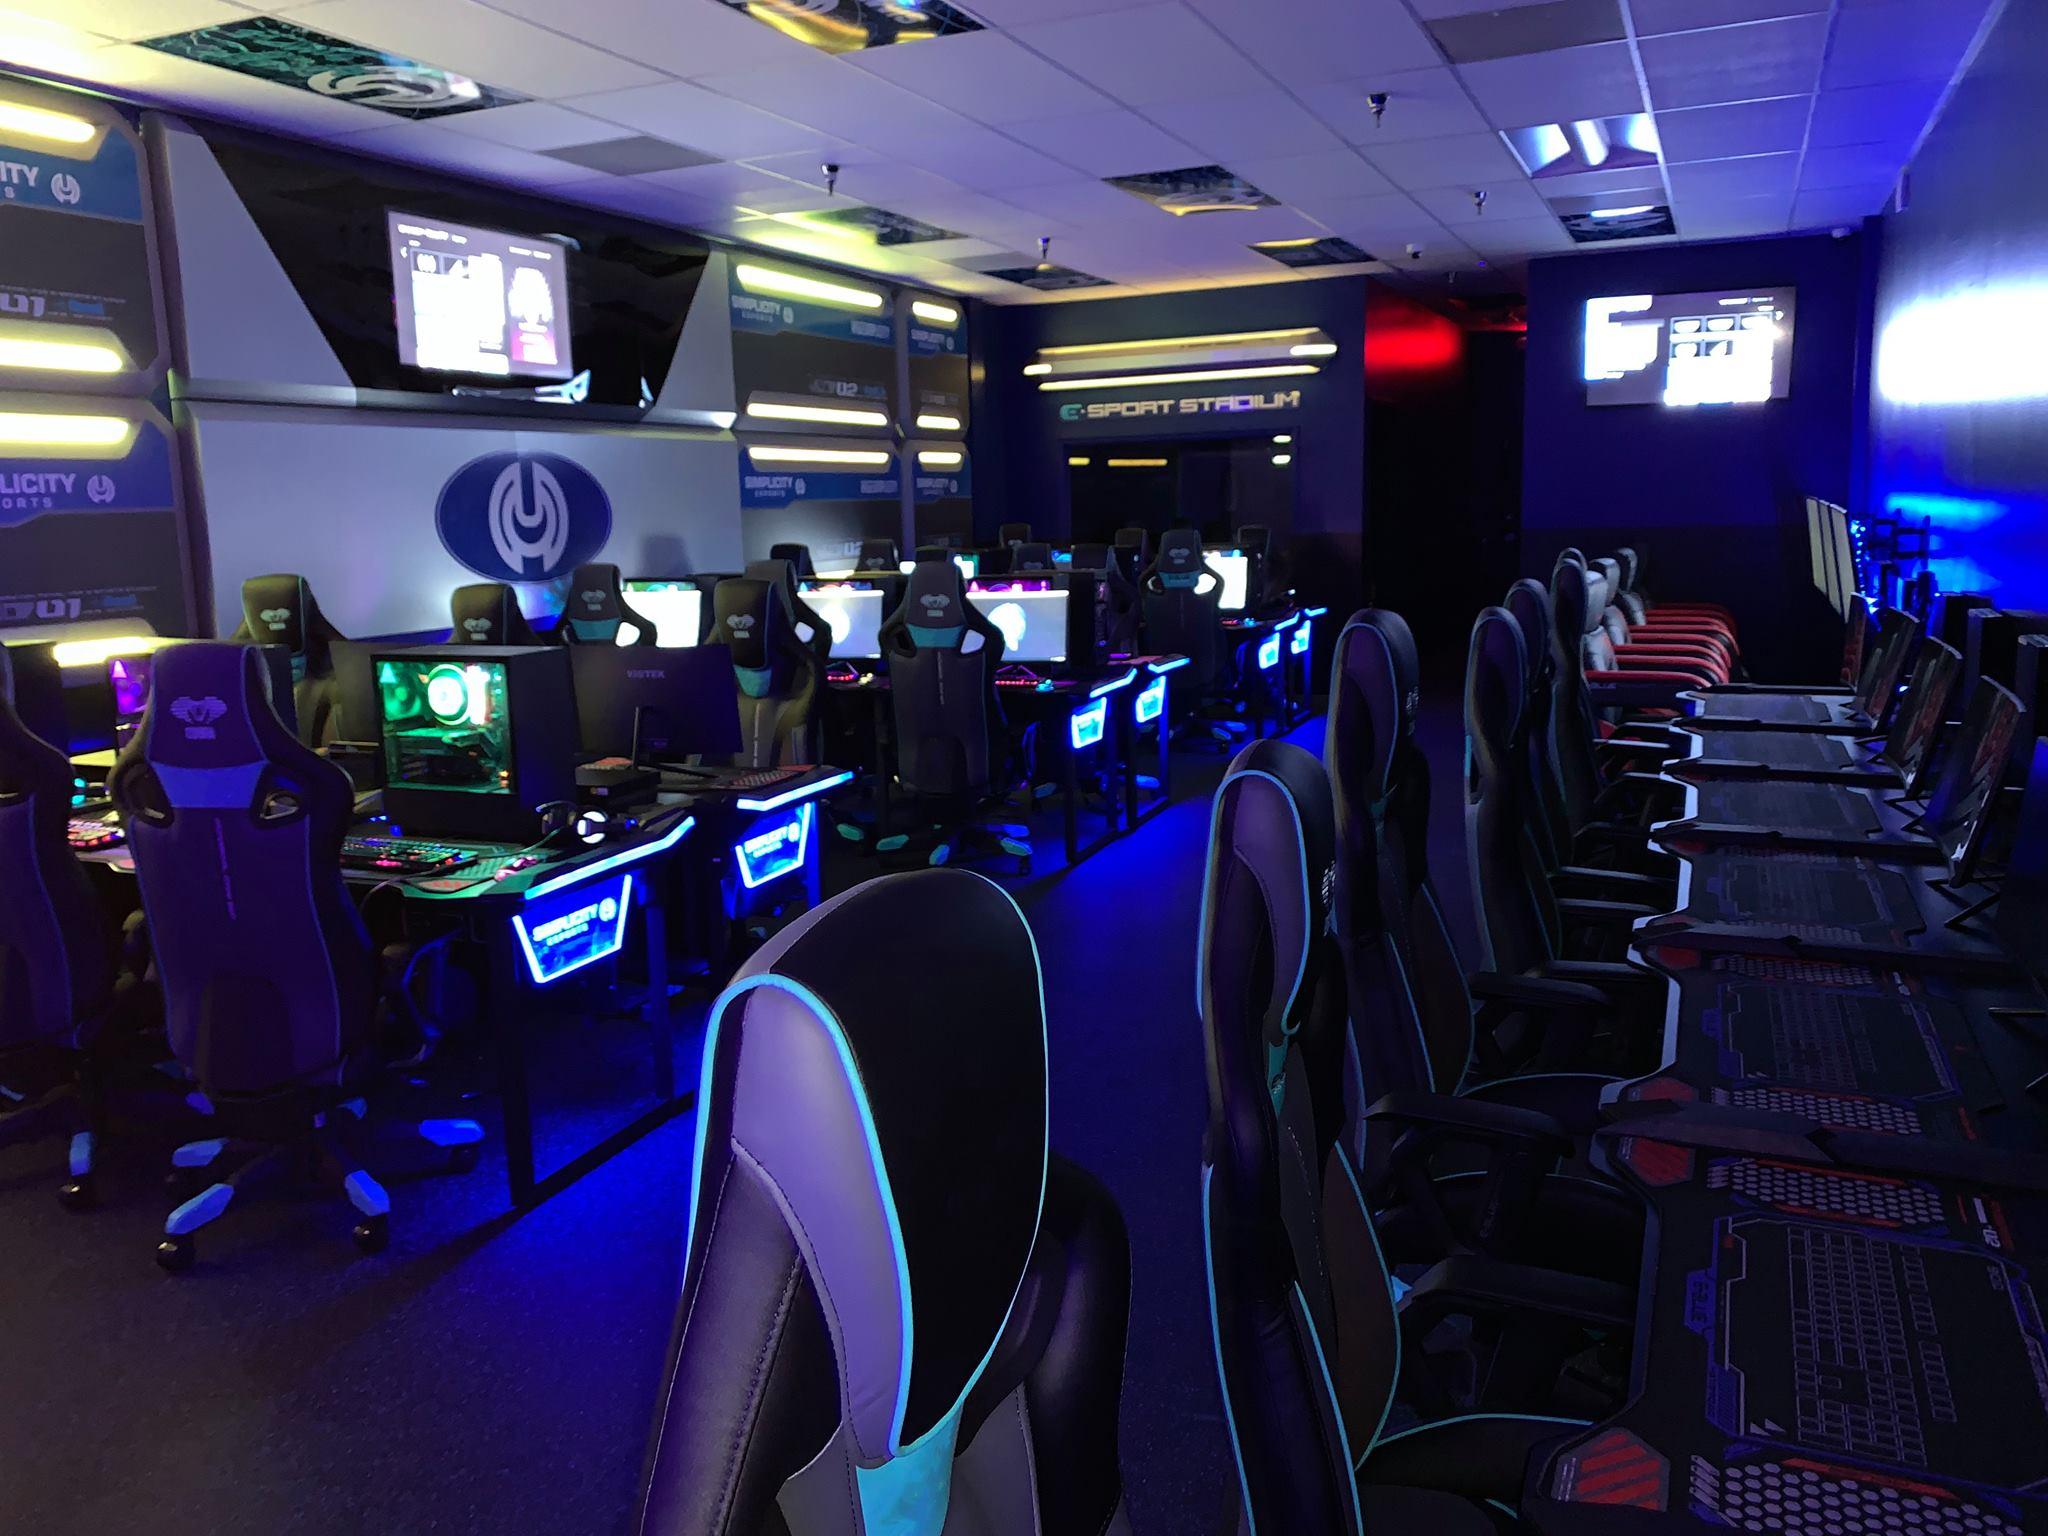 simplicity boca raton 1 - Simplicity Esports to acquire five additional gaming centres